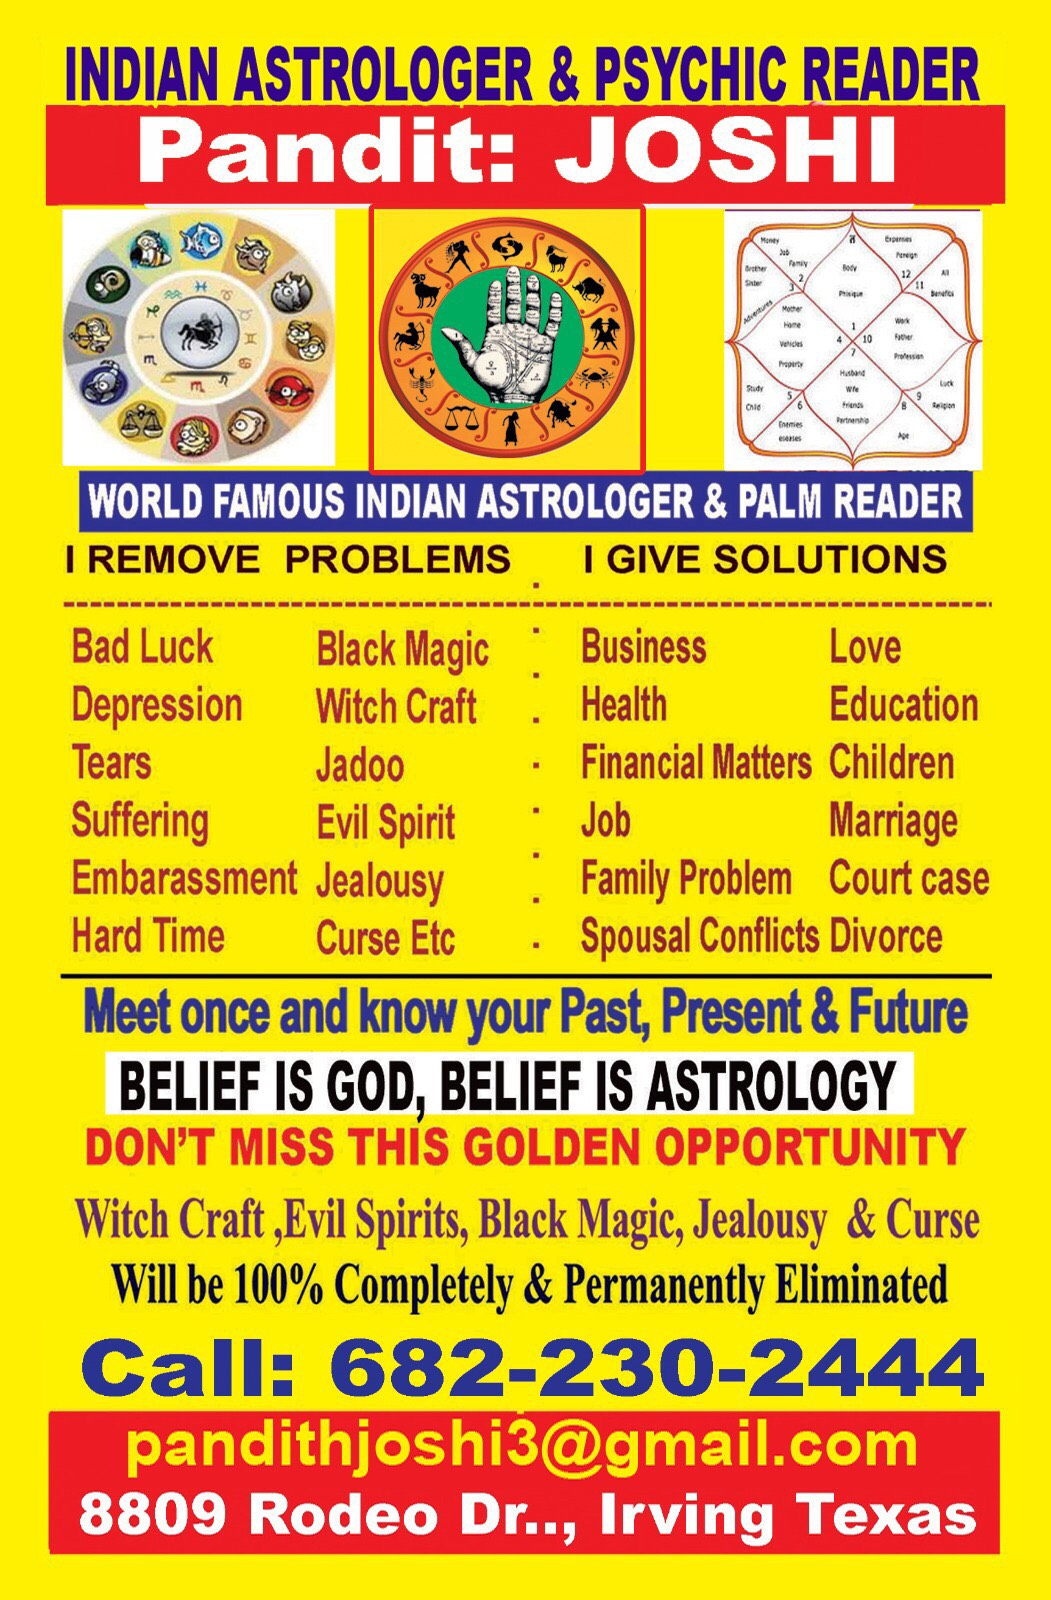 South indian astrologer and palm reader pandith joshi in houston e magazine of south indian astrologer and palm reader pandith joshi geenschuldenfo Images